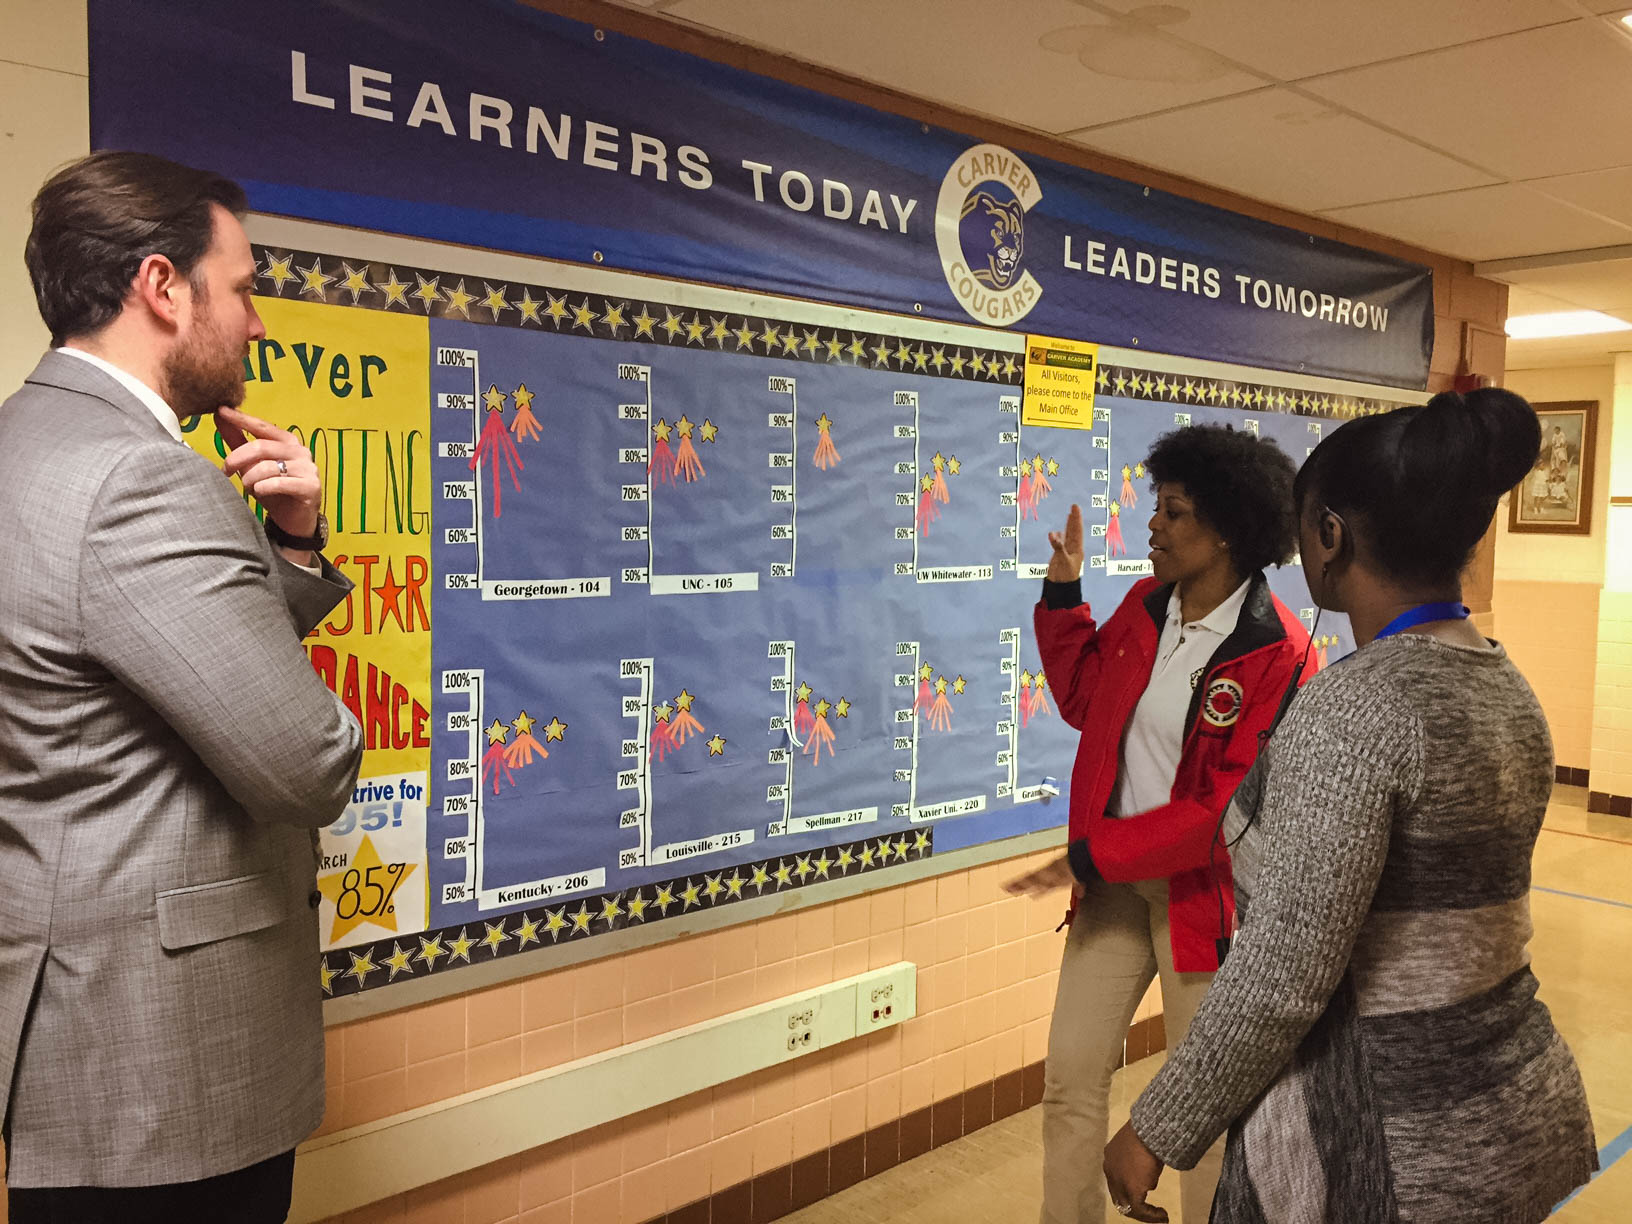 2pm School Tours: The best way to understand what City Year does is to see it in action. Potential partners are invited to do a school tour,and corps members support in leading these tours.